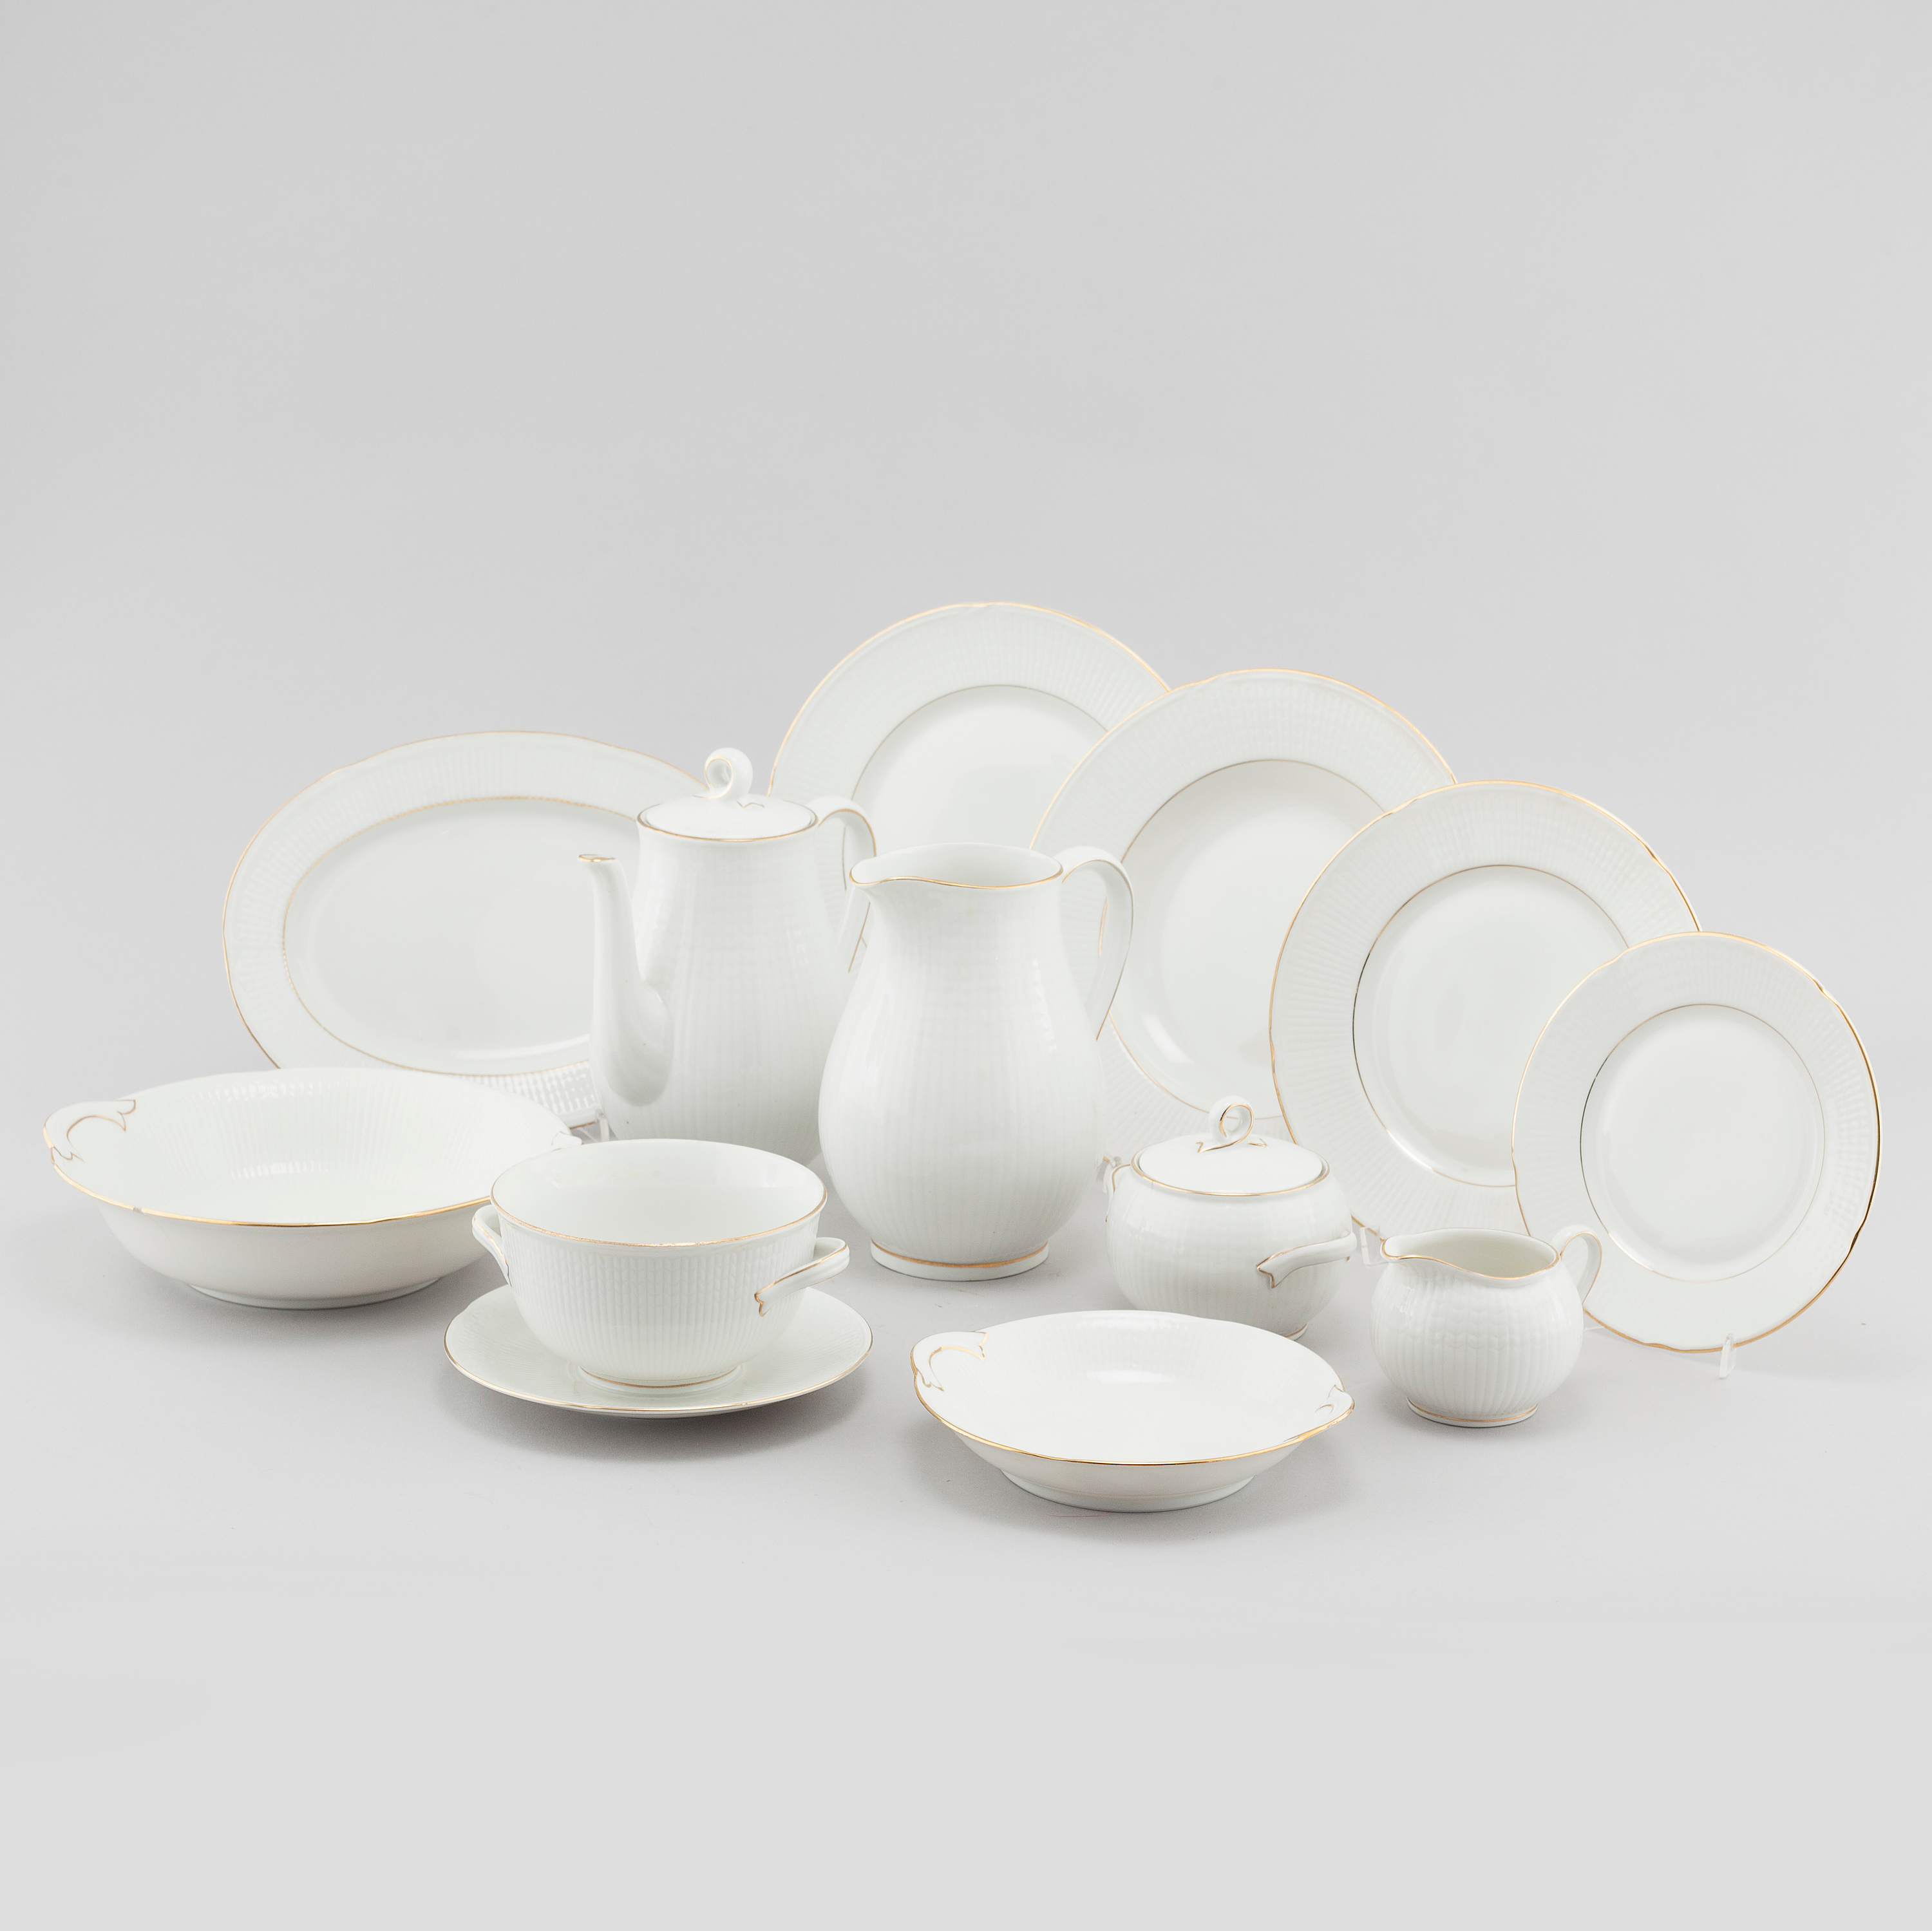 11117104 bukobject & 66 pieces of porcelain tableware by Louise Adelborg for Rörstrand ...